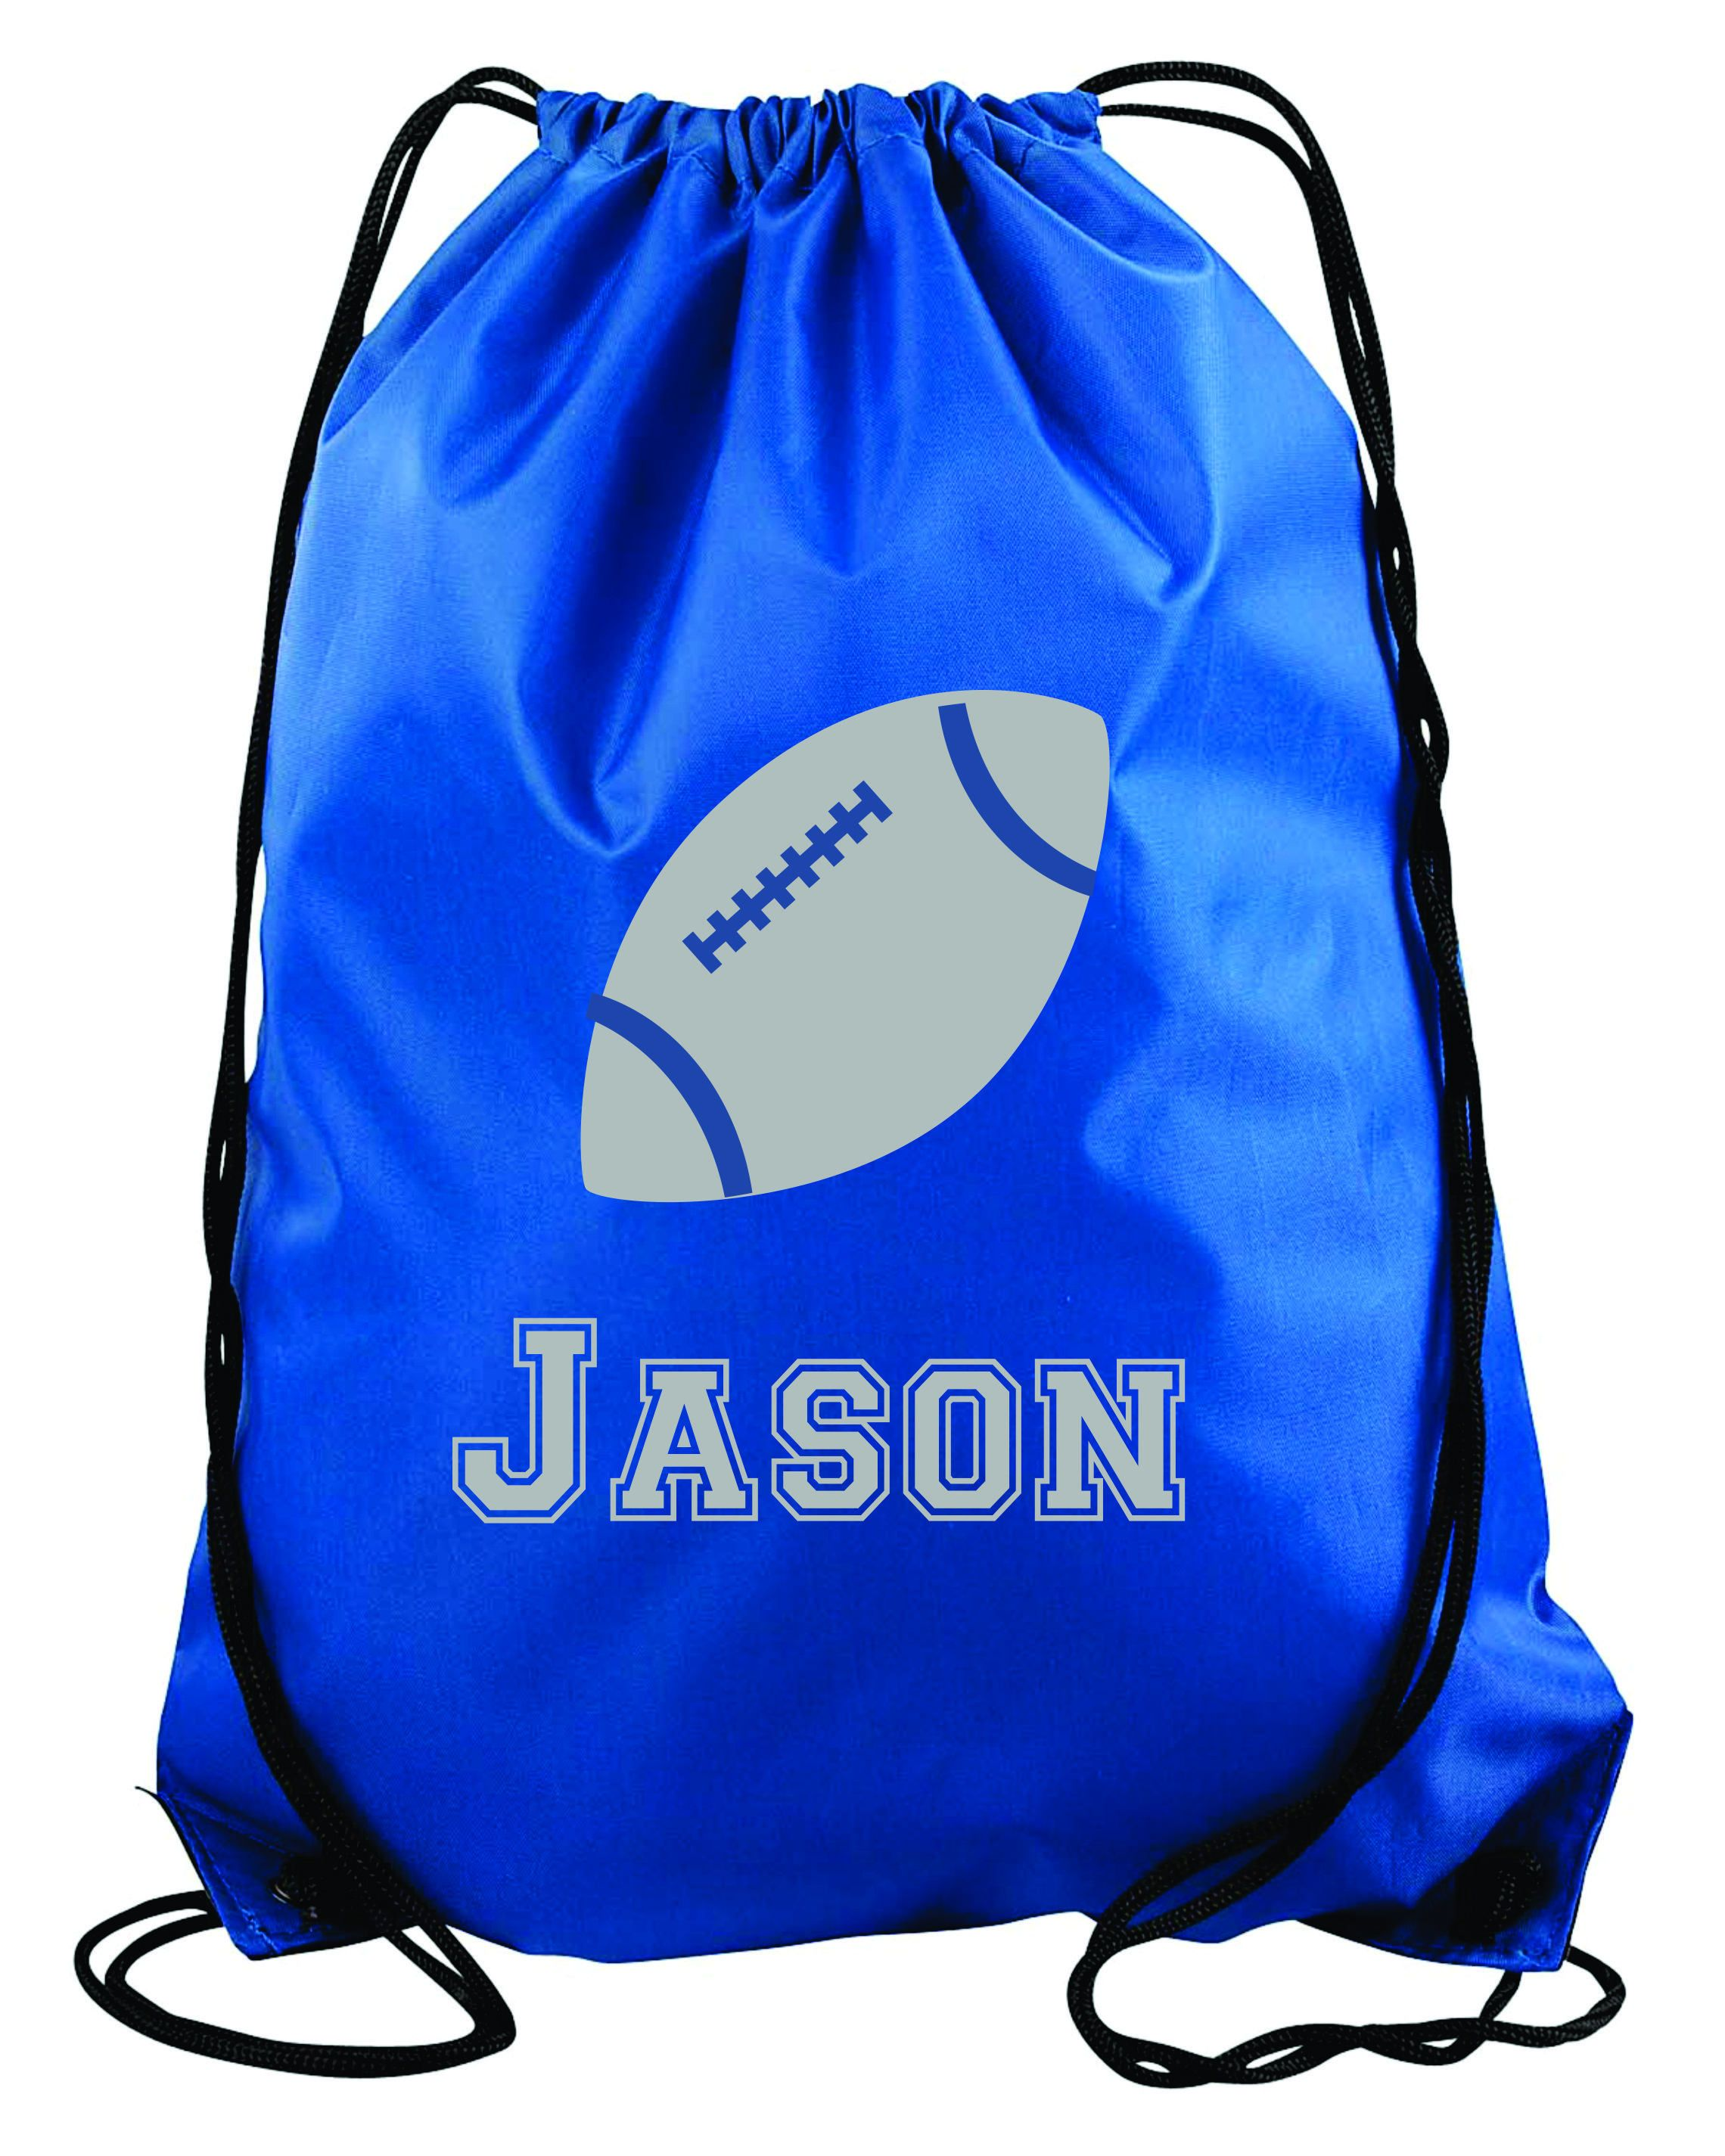 3839dd109bd521 Football personalized string bag- Kids drawstring bags, gym bags, backpacks,  , swimbag, sports bag. by 5MonkeysDesigns on Etsy